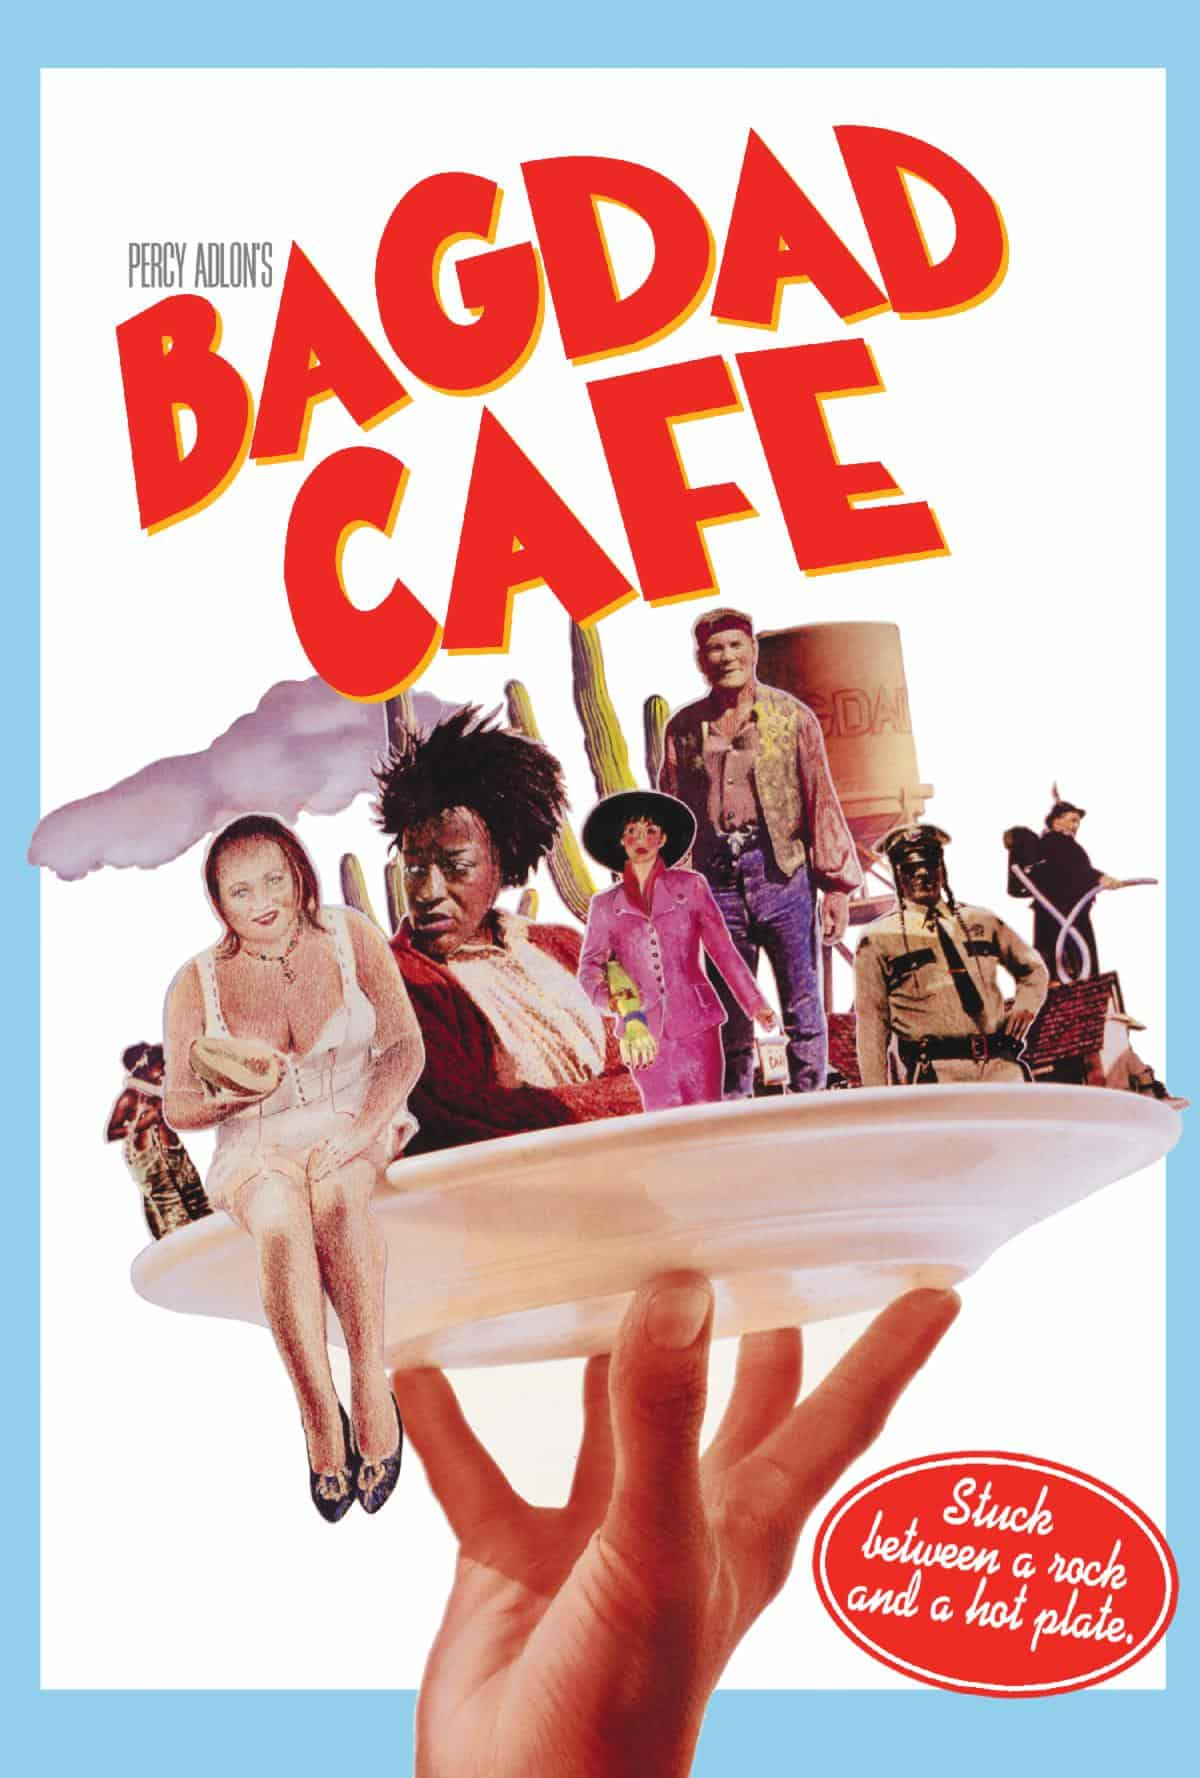 Percy Adlon's 'Bagdad Cafe' Out on Digital & On Demand April 27 from Shout! Factory 2